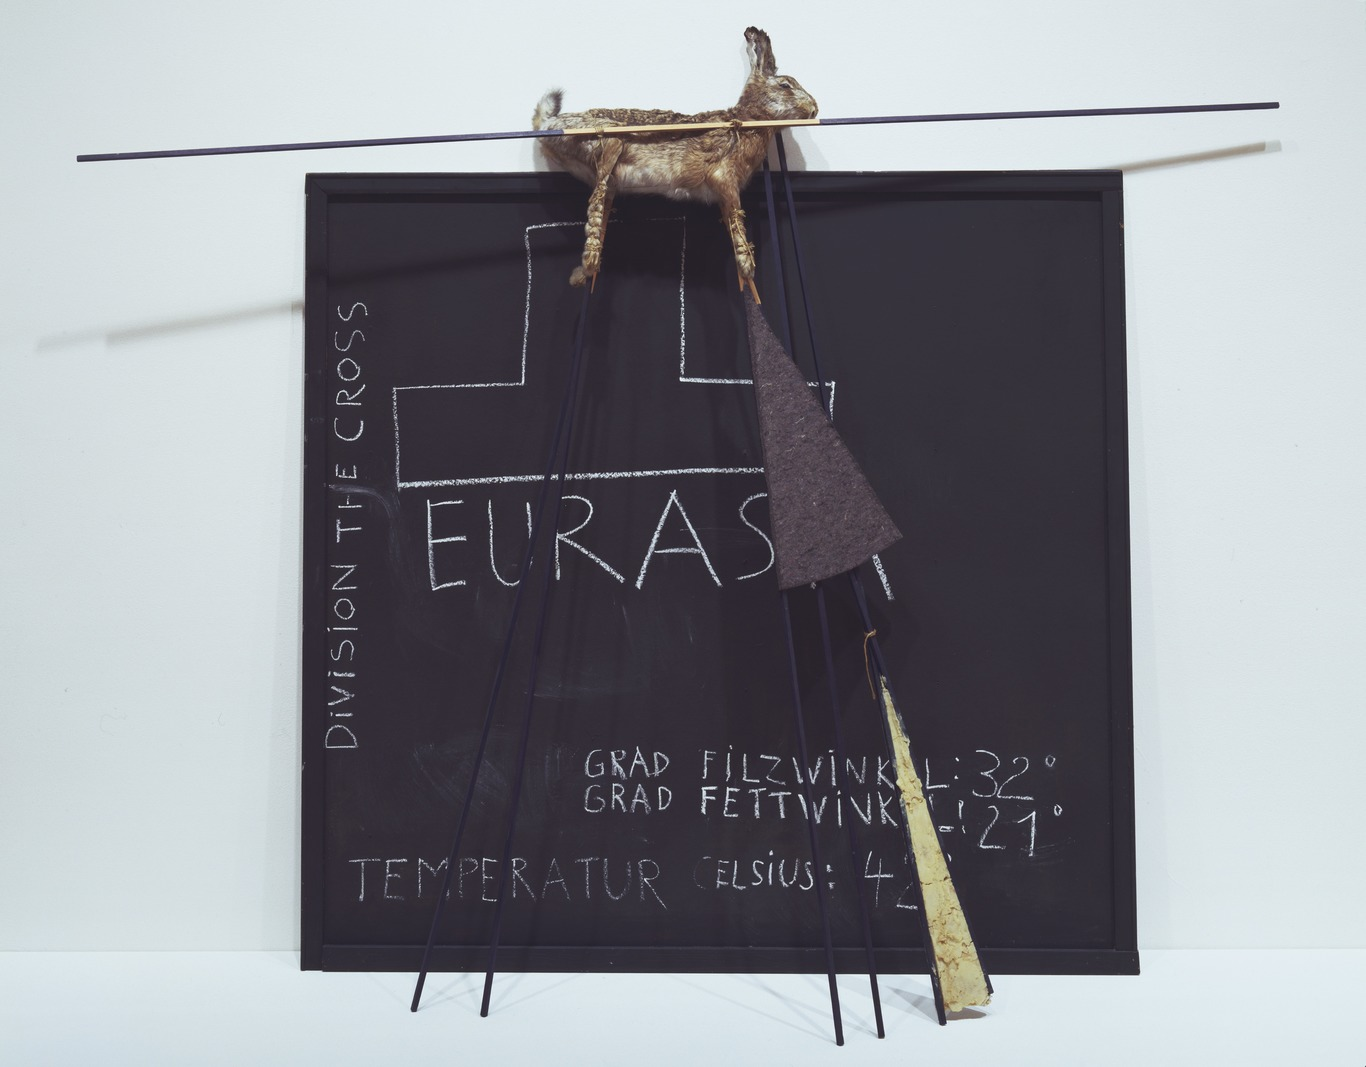 Joseph Beuys: Eurasia Siberian Symphony, 1963, panel with chalk drawing, felt, fat, hare and blue-painted poles, 1.83×2.30×0.50 m, 1966 (New York, Museum of Modern Art); © 2007 Artists Rights Society (ARS), New York/VG Bild-Kunst, Bonn, courtesy of The Museum of Modern Art, New York